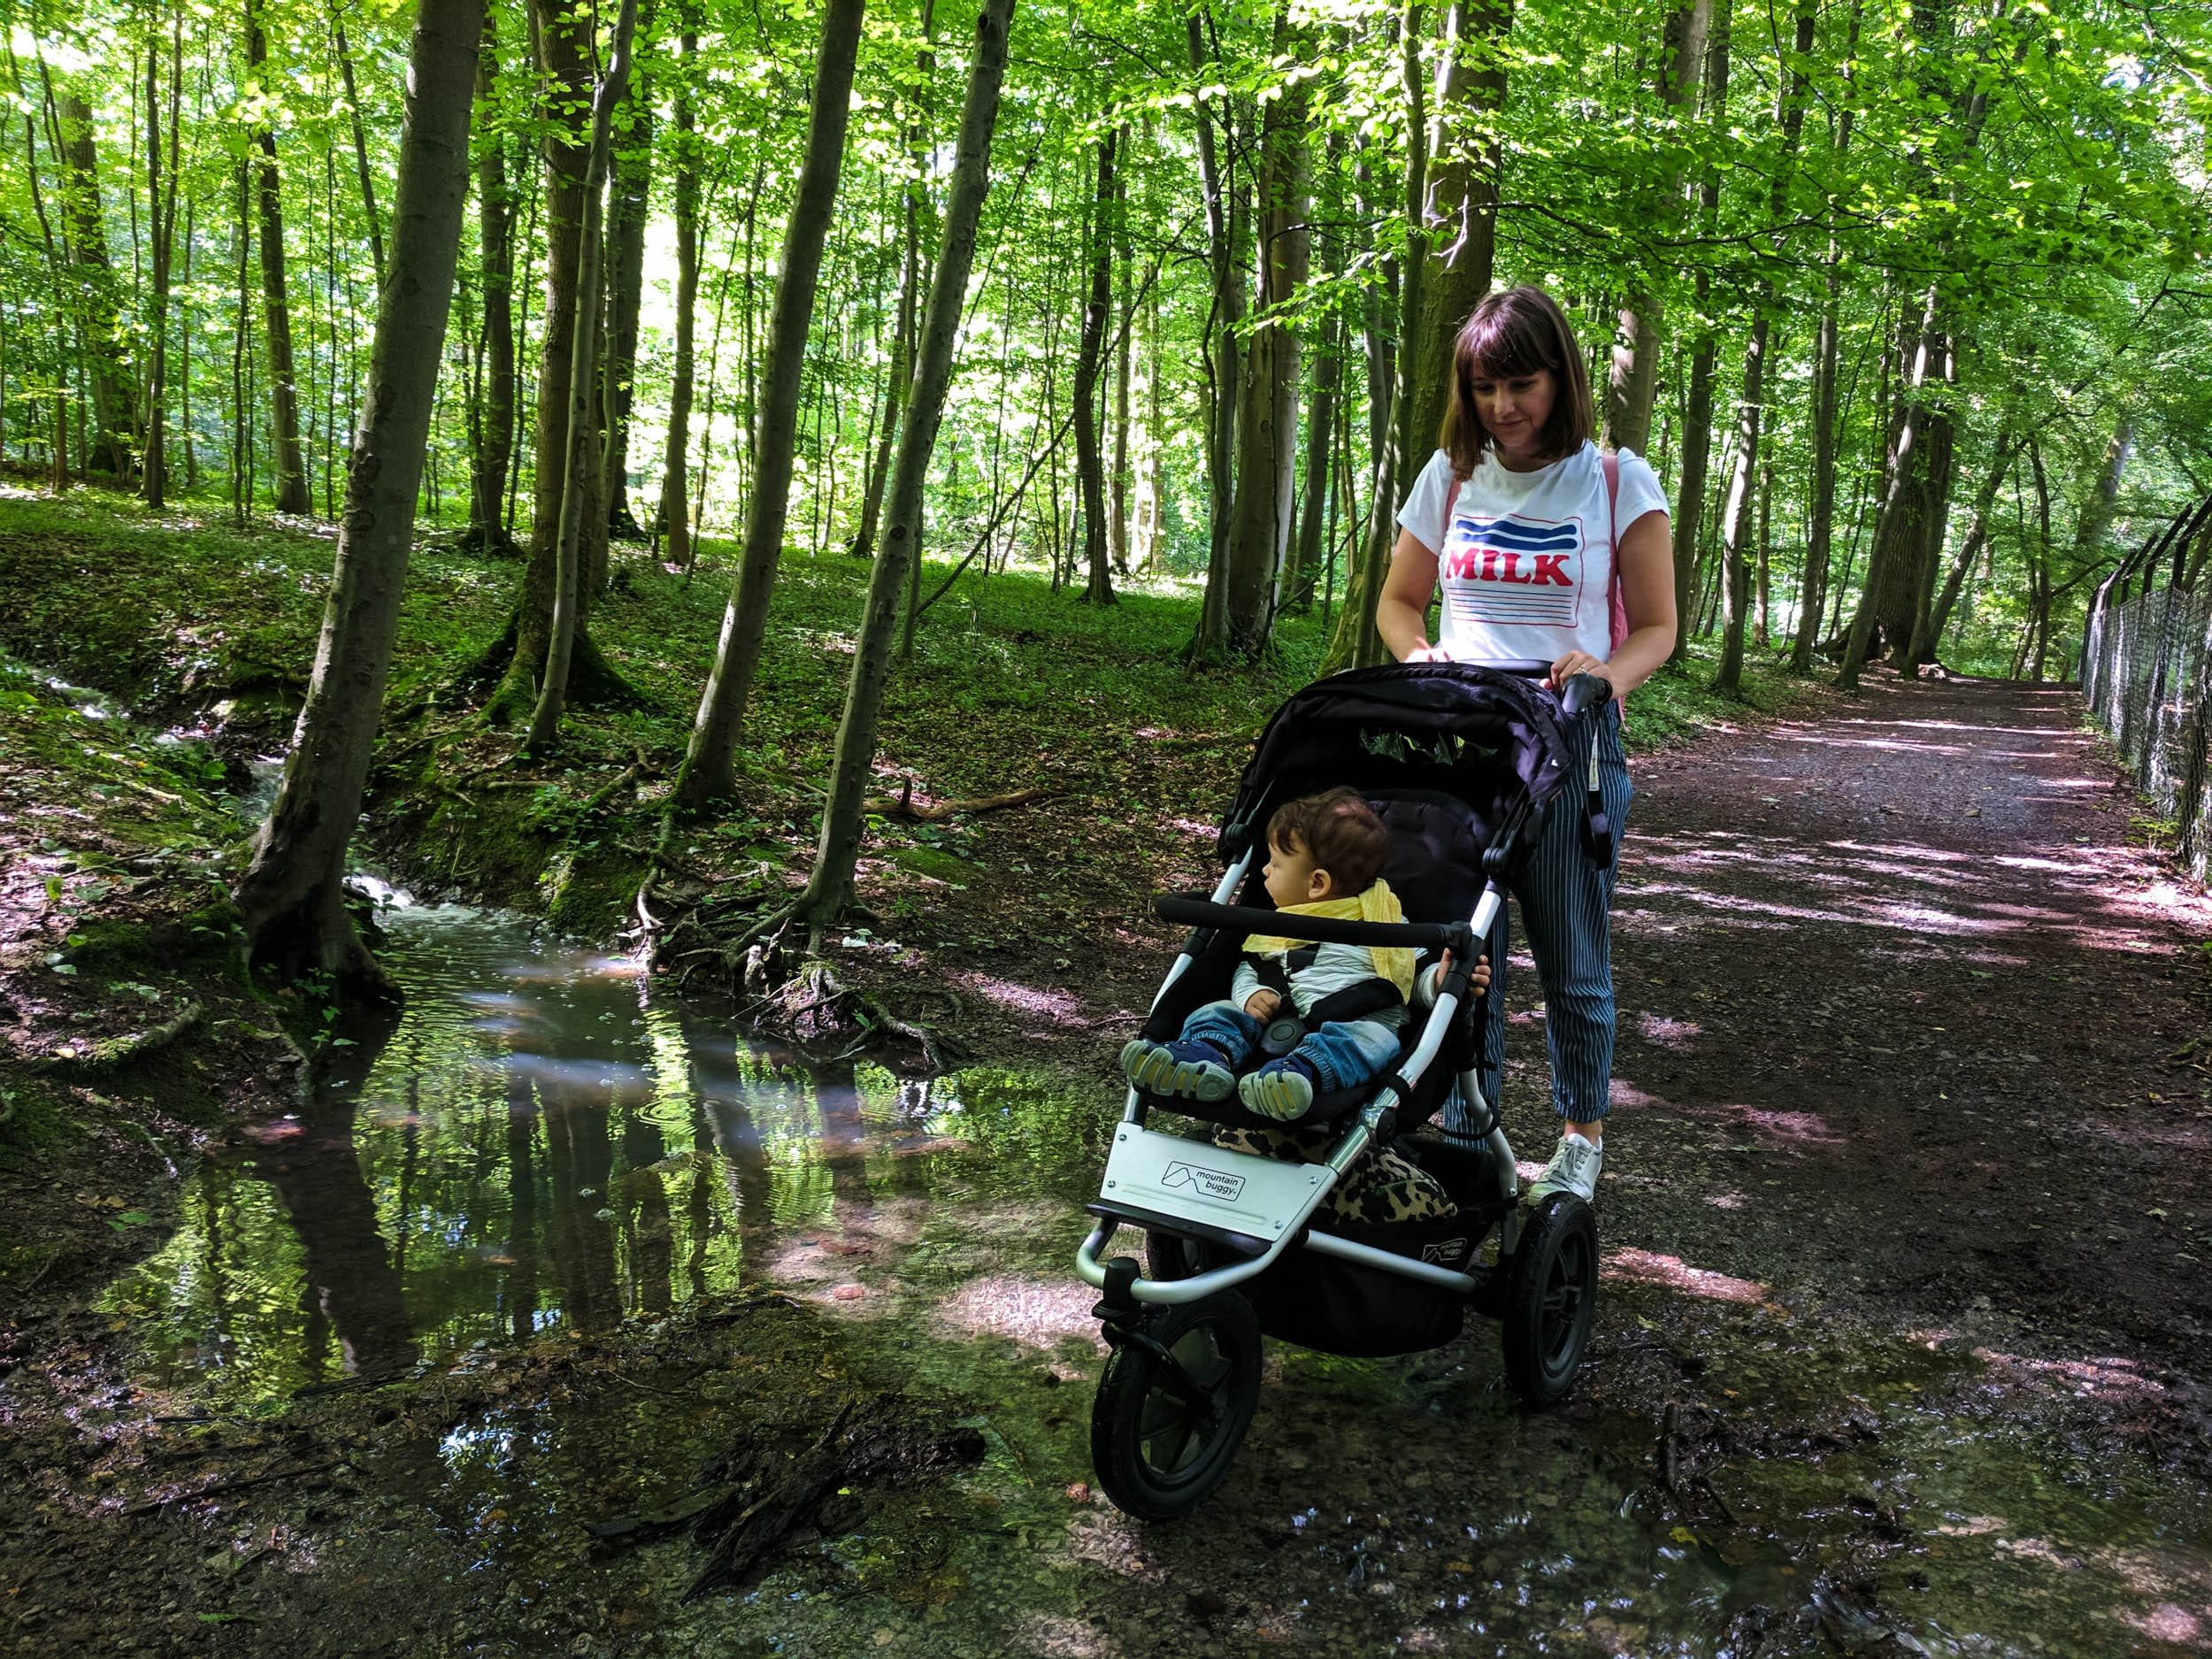 Mountainbuggy Urban Jungle | Wald | Überflutung | Trampelpfad | ivy.li